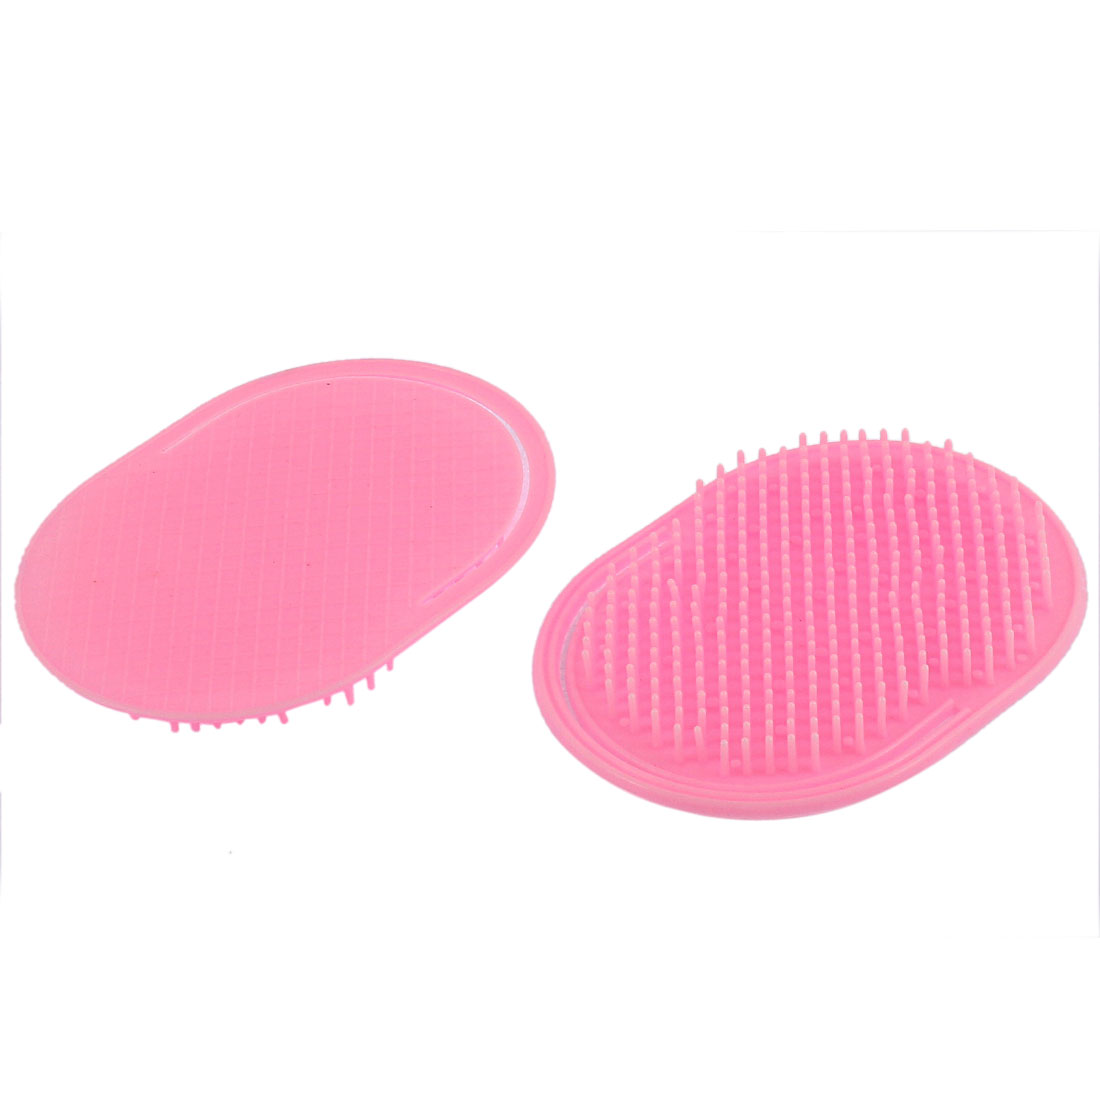 Hair Head Scalp Massage Comb Shampoo Brush Pink 2Pcs